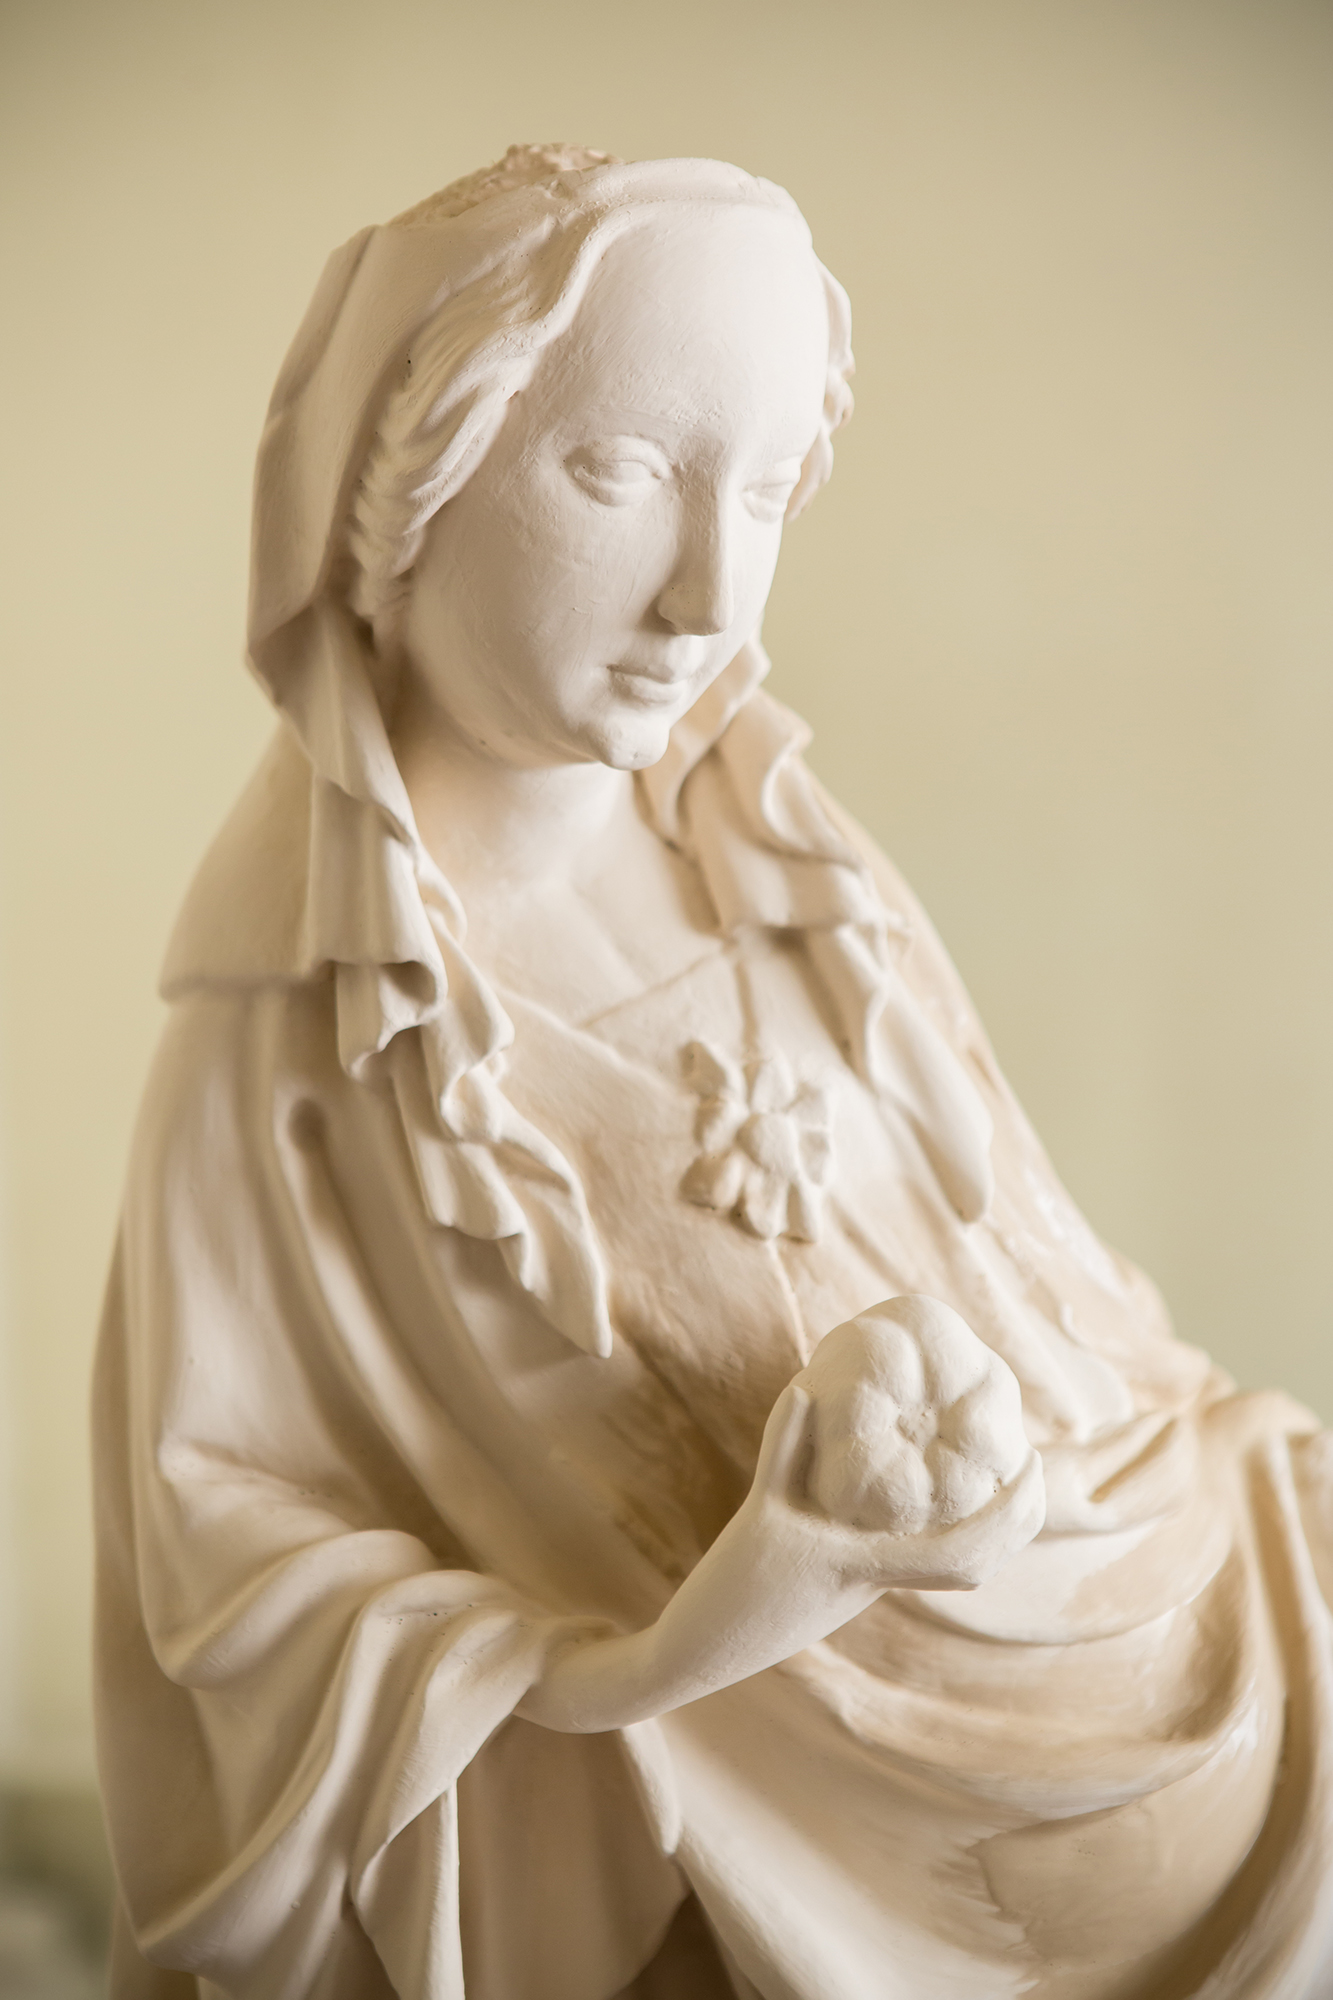 Close-up on the figure of Our Lady.